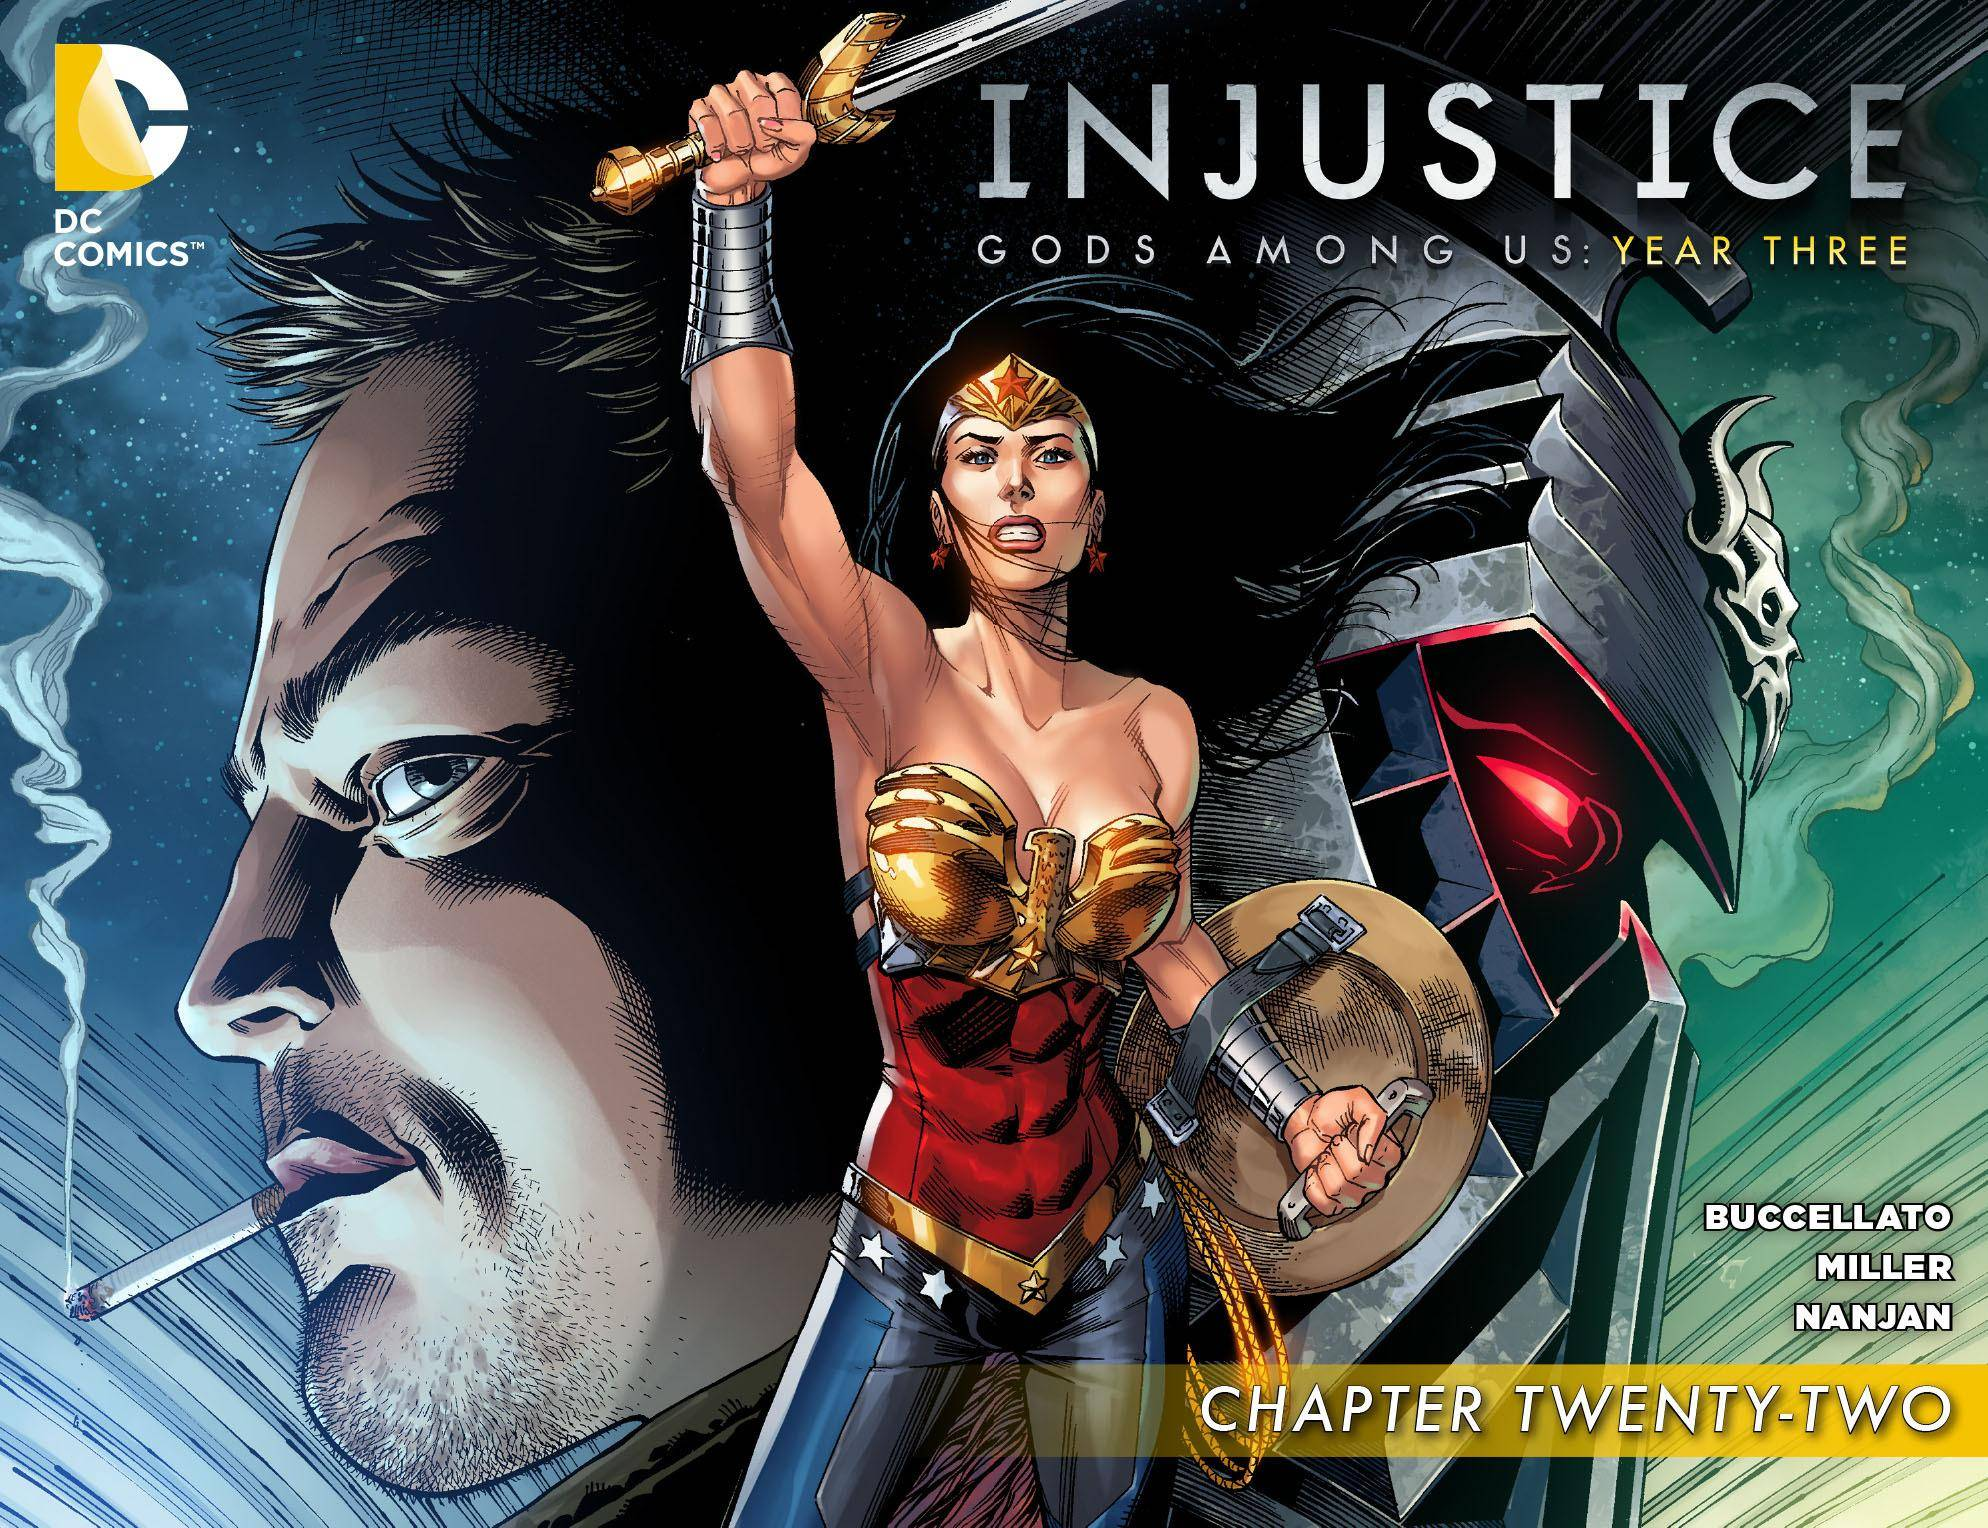 Injustice - Gods Among Us - Year Three 022 2015 digital